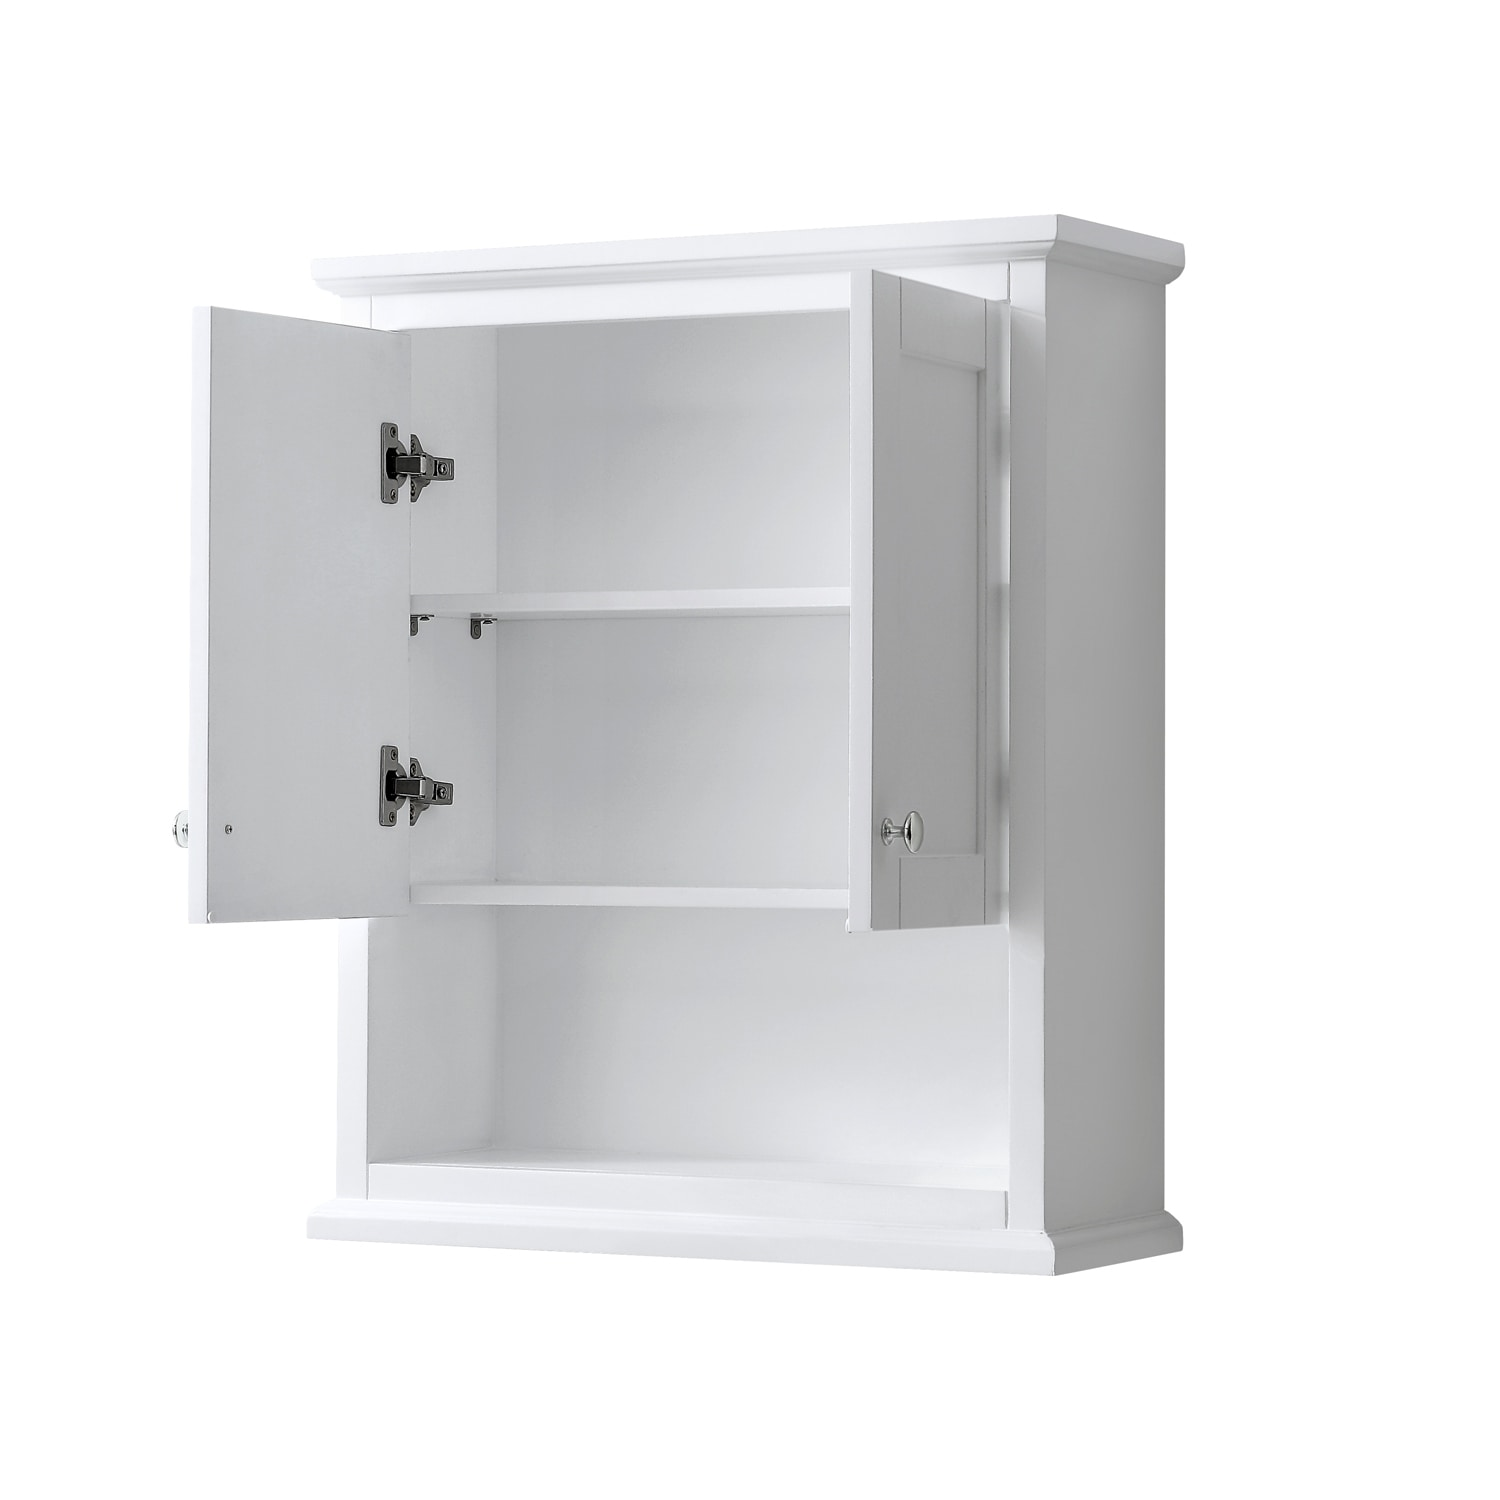 Avery Wall Mounted Bathroom Storage Cabinet Overstock 28870352 White